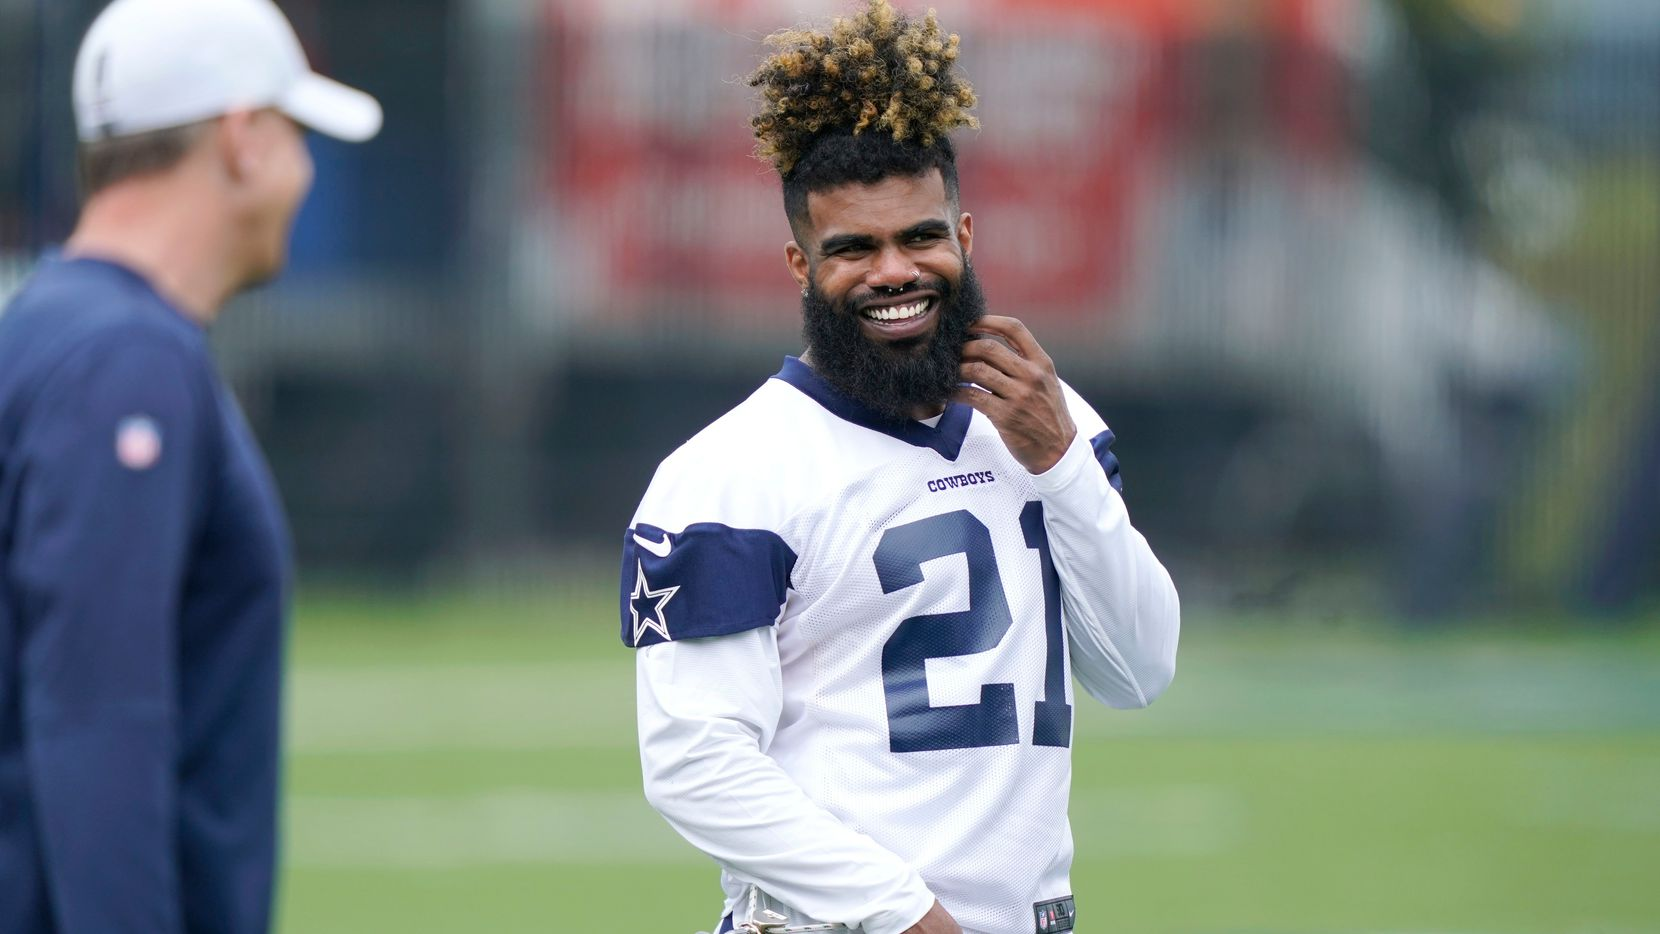 Dallas Cowboys running back Ezekiel Elliott smiles as he warms up during an NFL football team practice Wednesday, June 9, 2021, in Frisco, Texas.